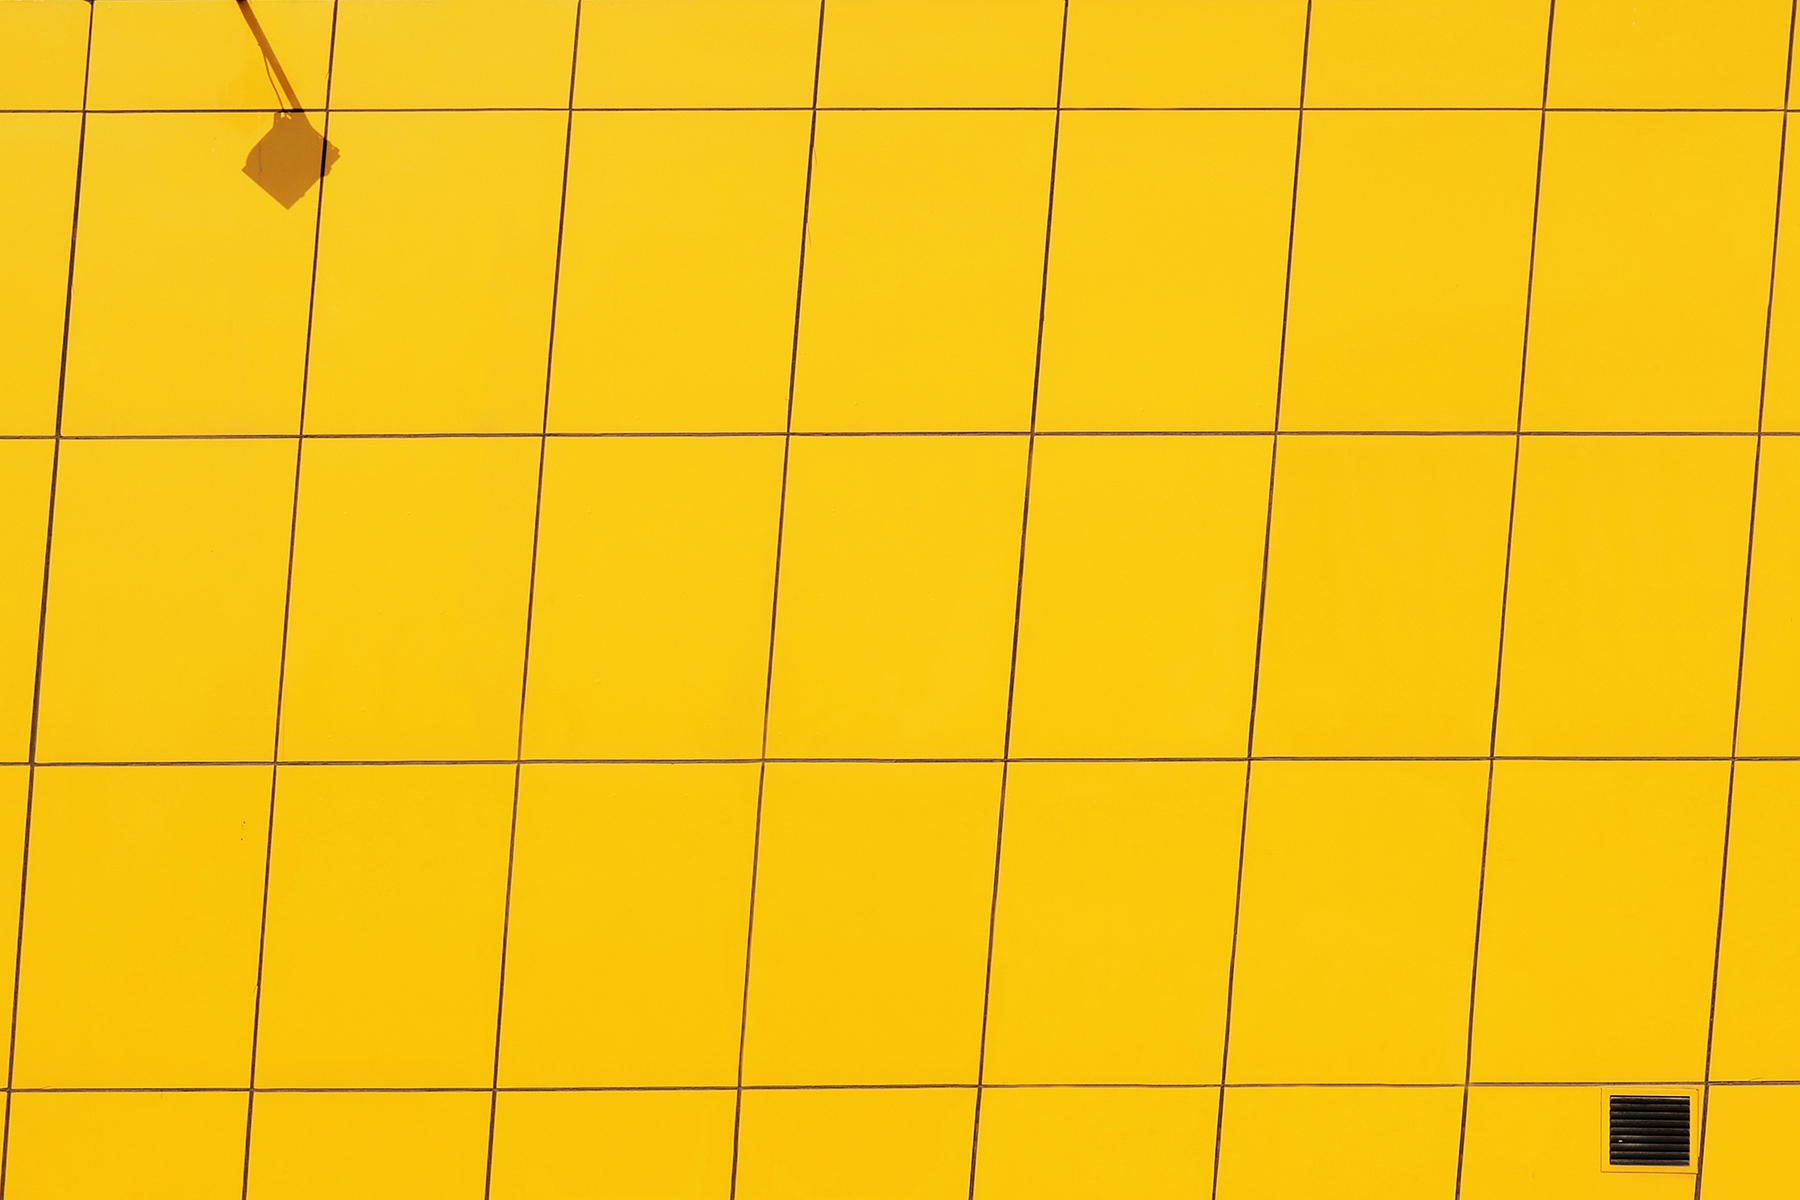 Wallpaper_Yener-_YellowWall2--2